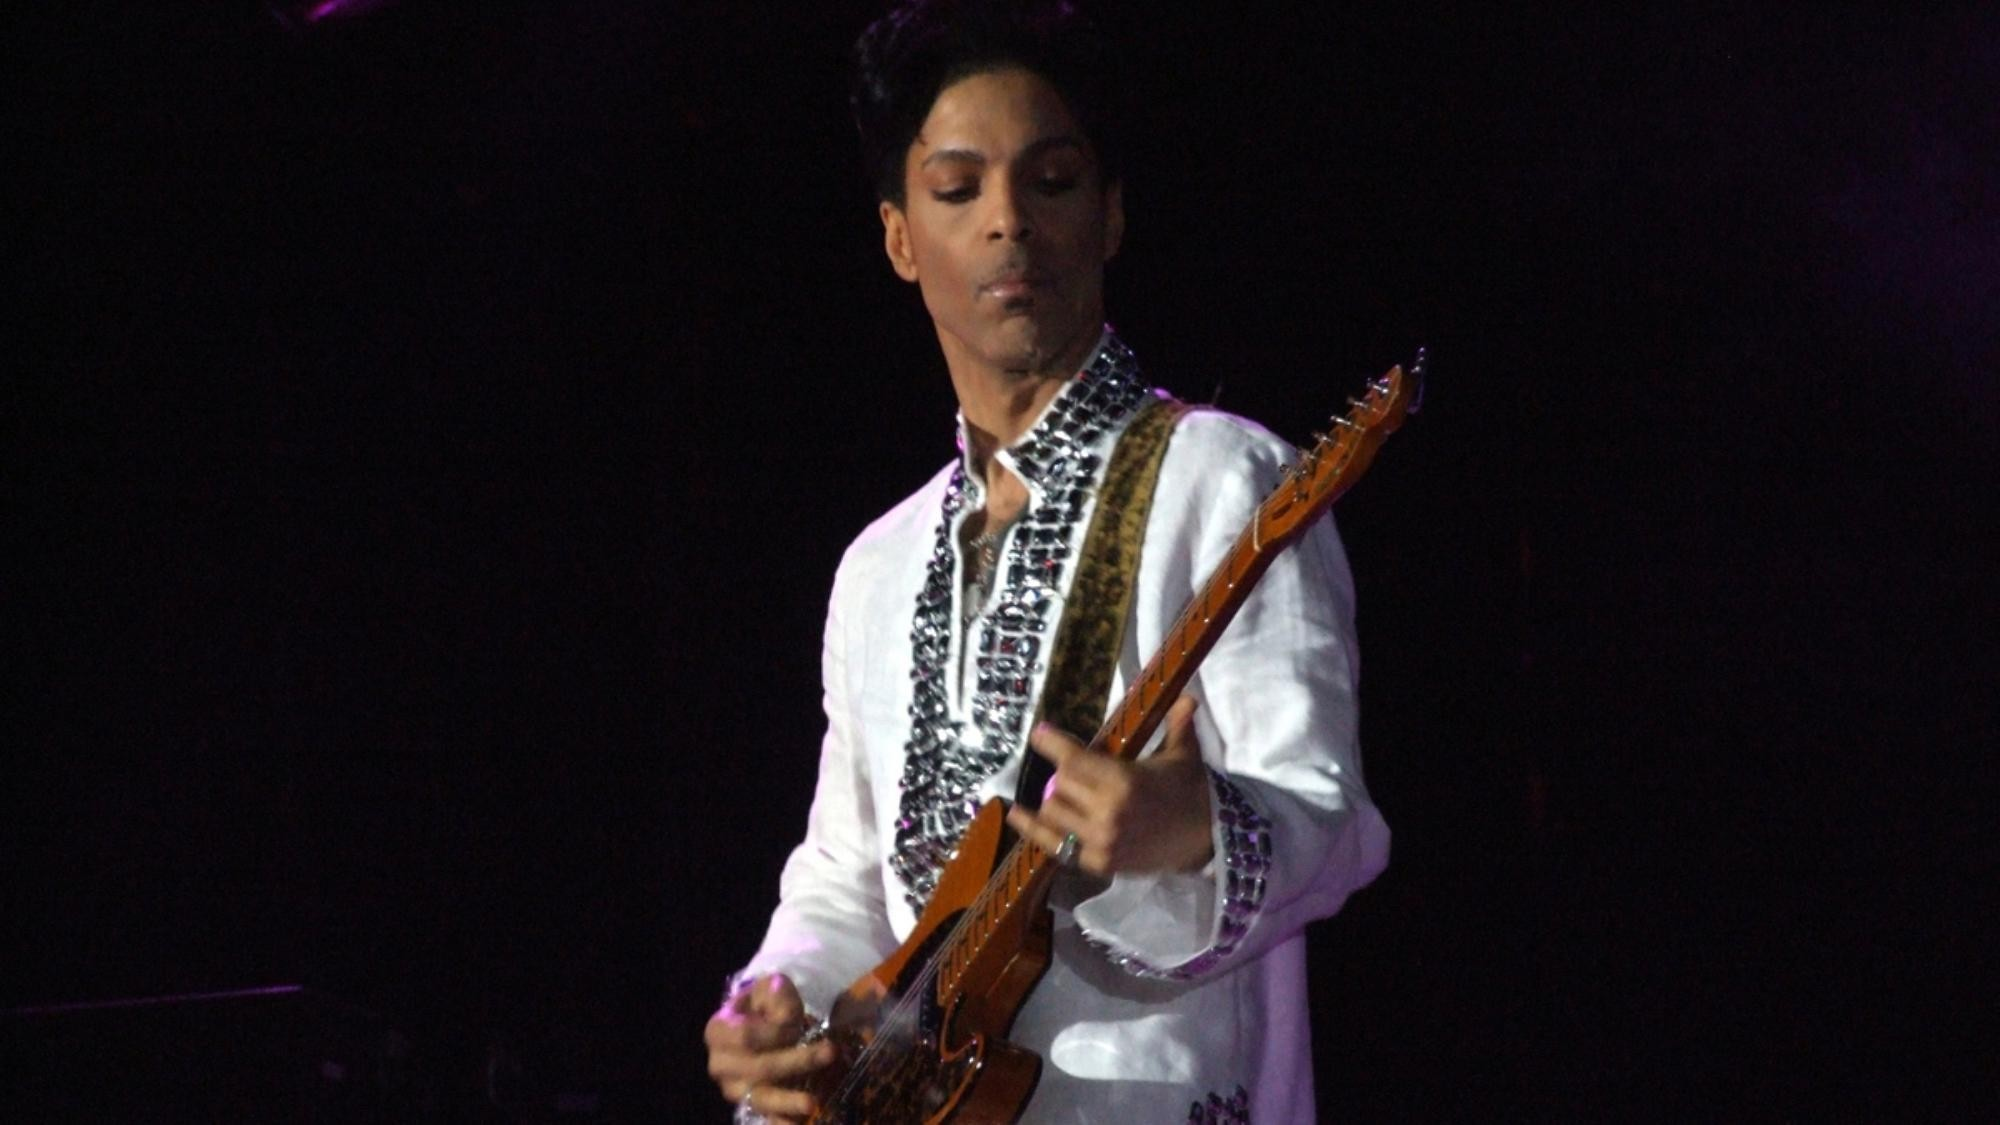 new music from prince's secret vault is almost here